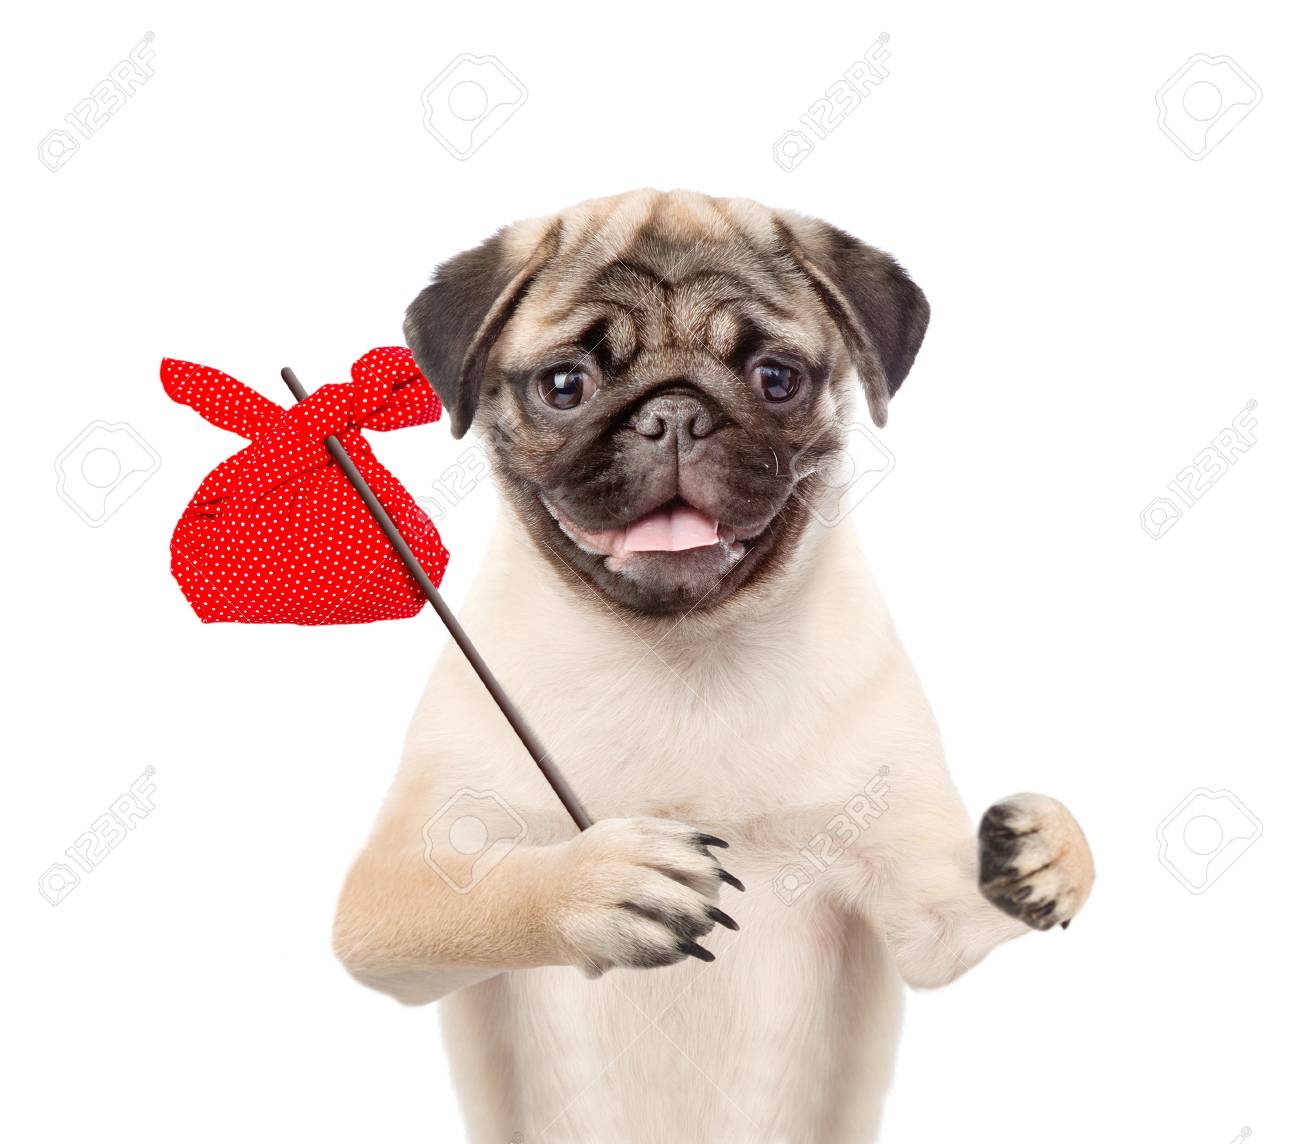 90540669-funny-puppy-with-a-stick-and-a-red-bag-.jpg